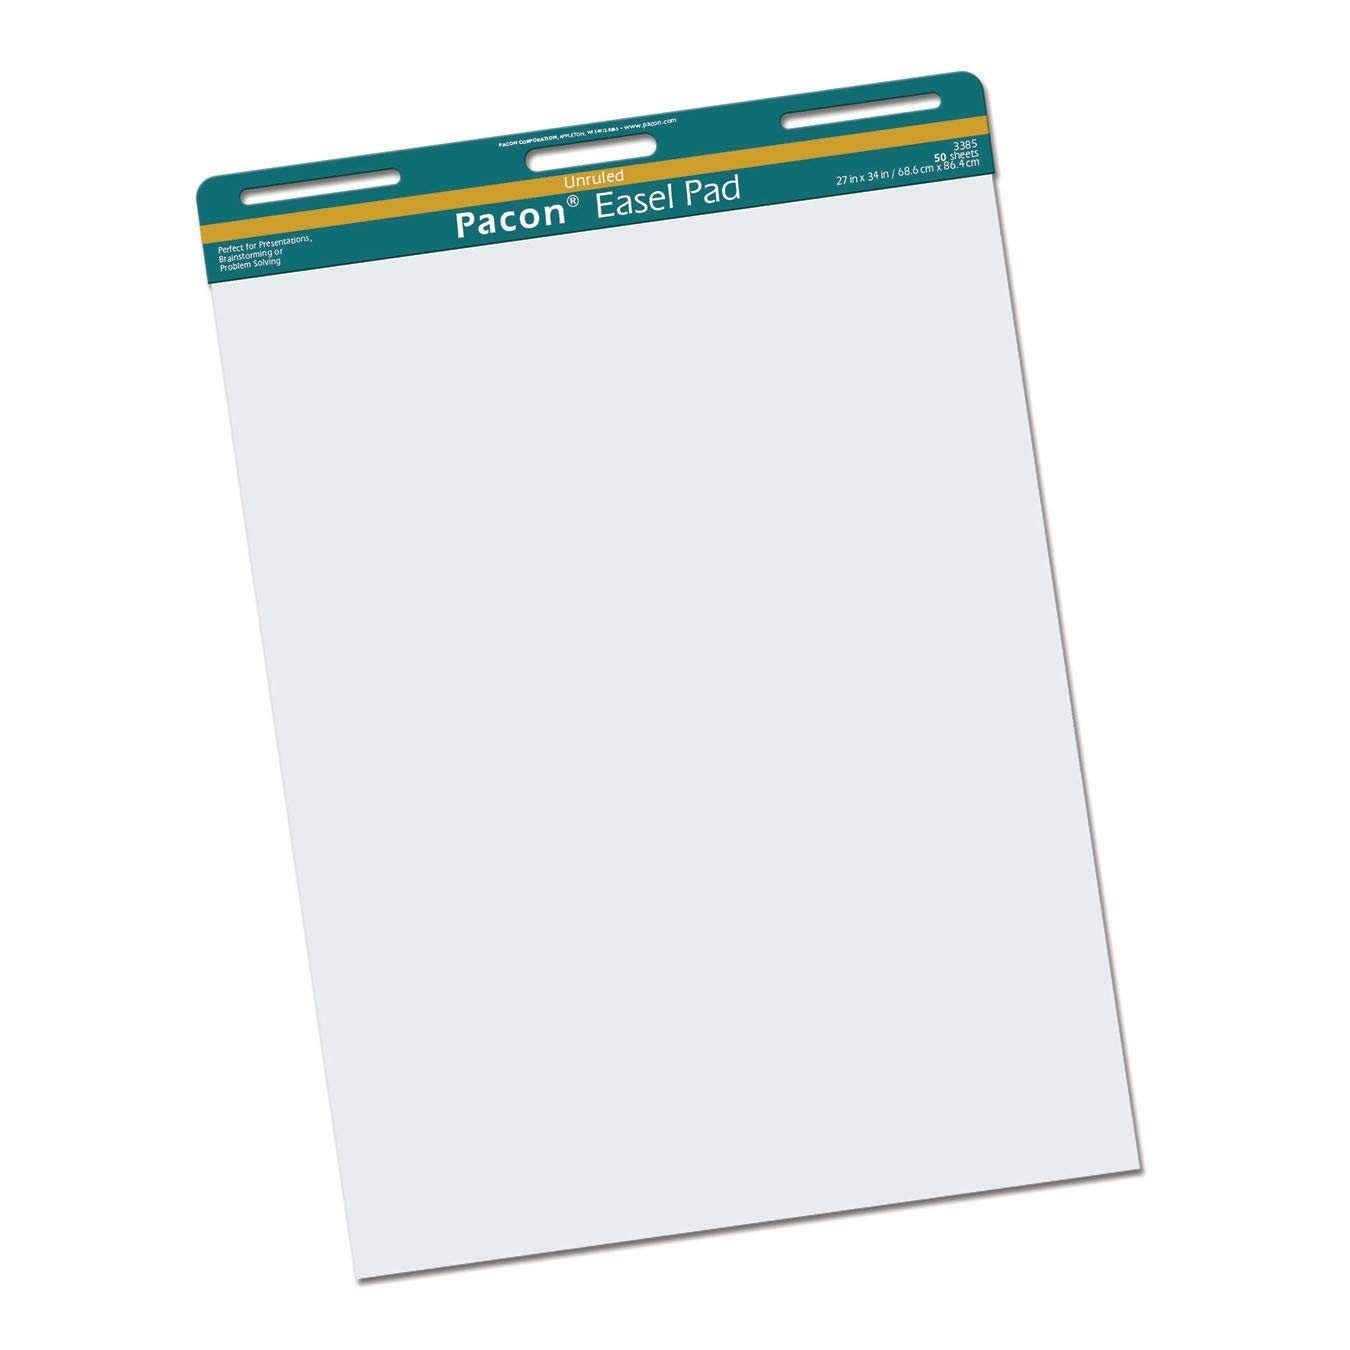 Pacon Easel Pad, Perforated, Unruled, 27x34'', 50 Sheets, White (PAC3385) by PACON